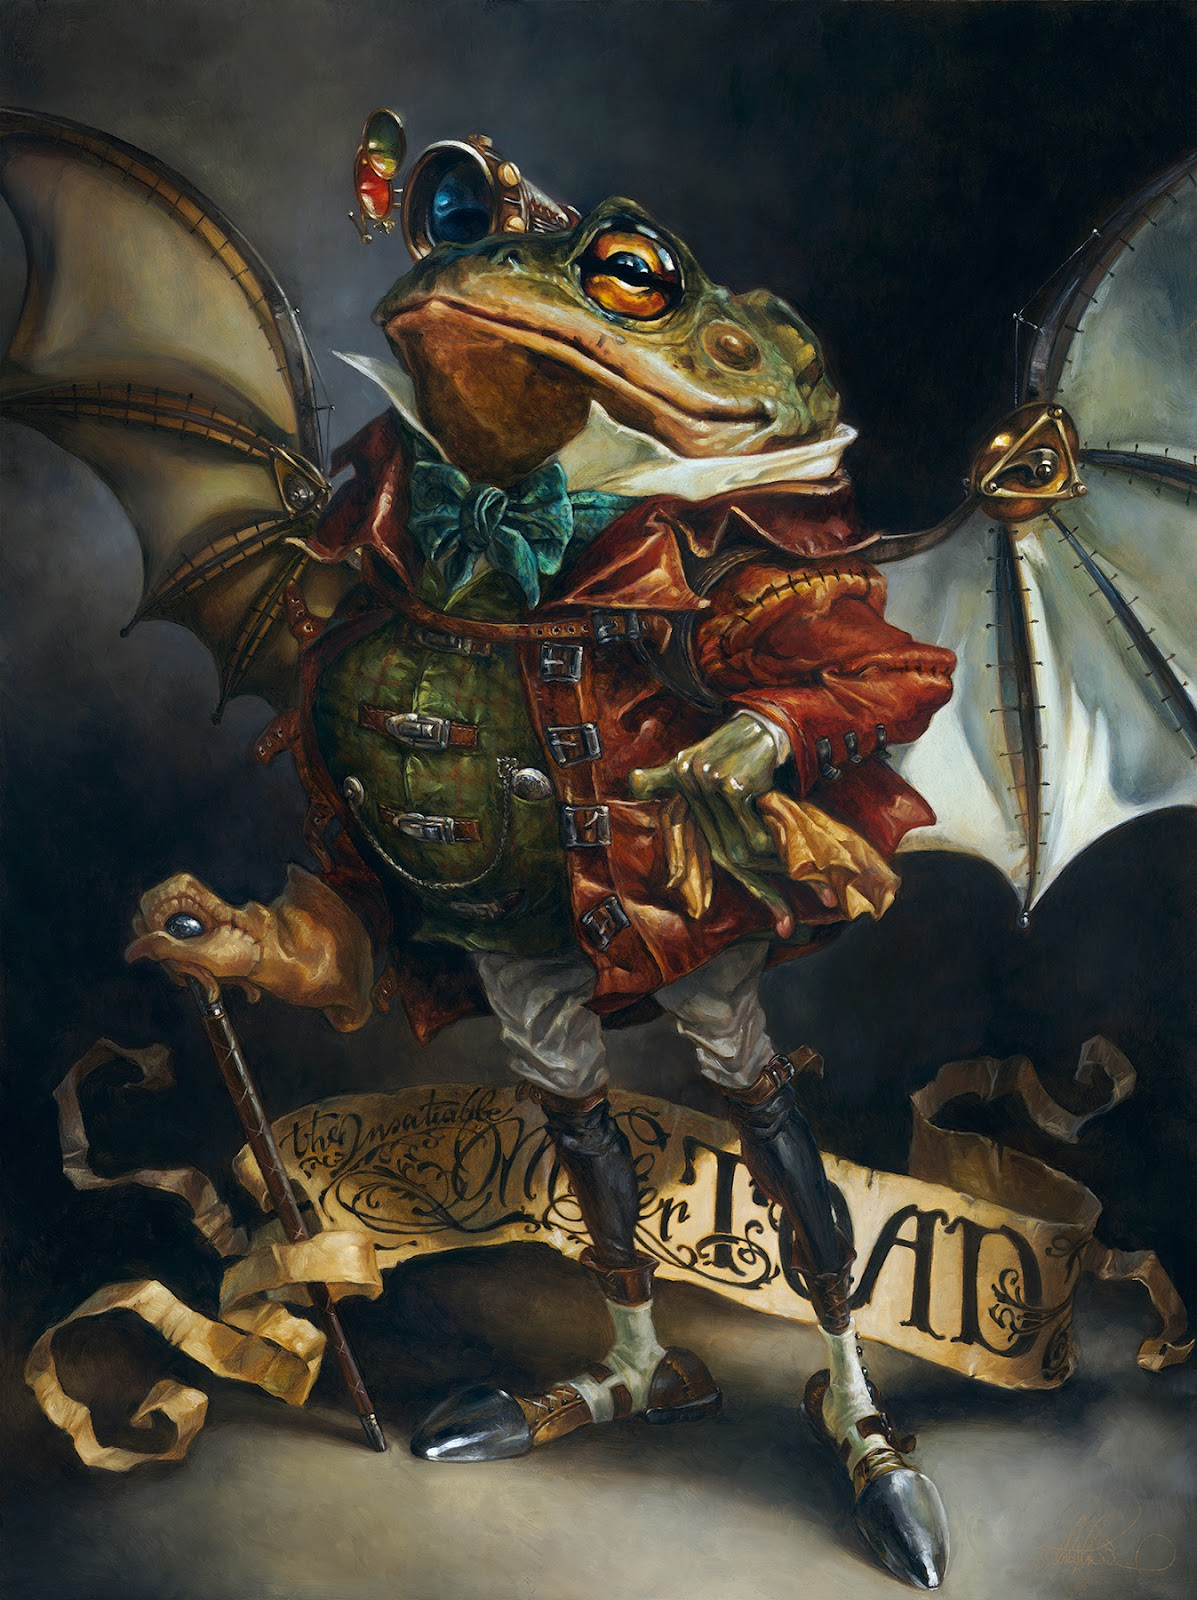 d732a-the-insatiable-mr-toad-heather-theurer